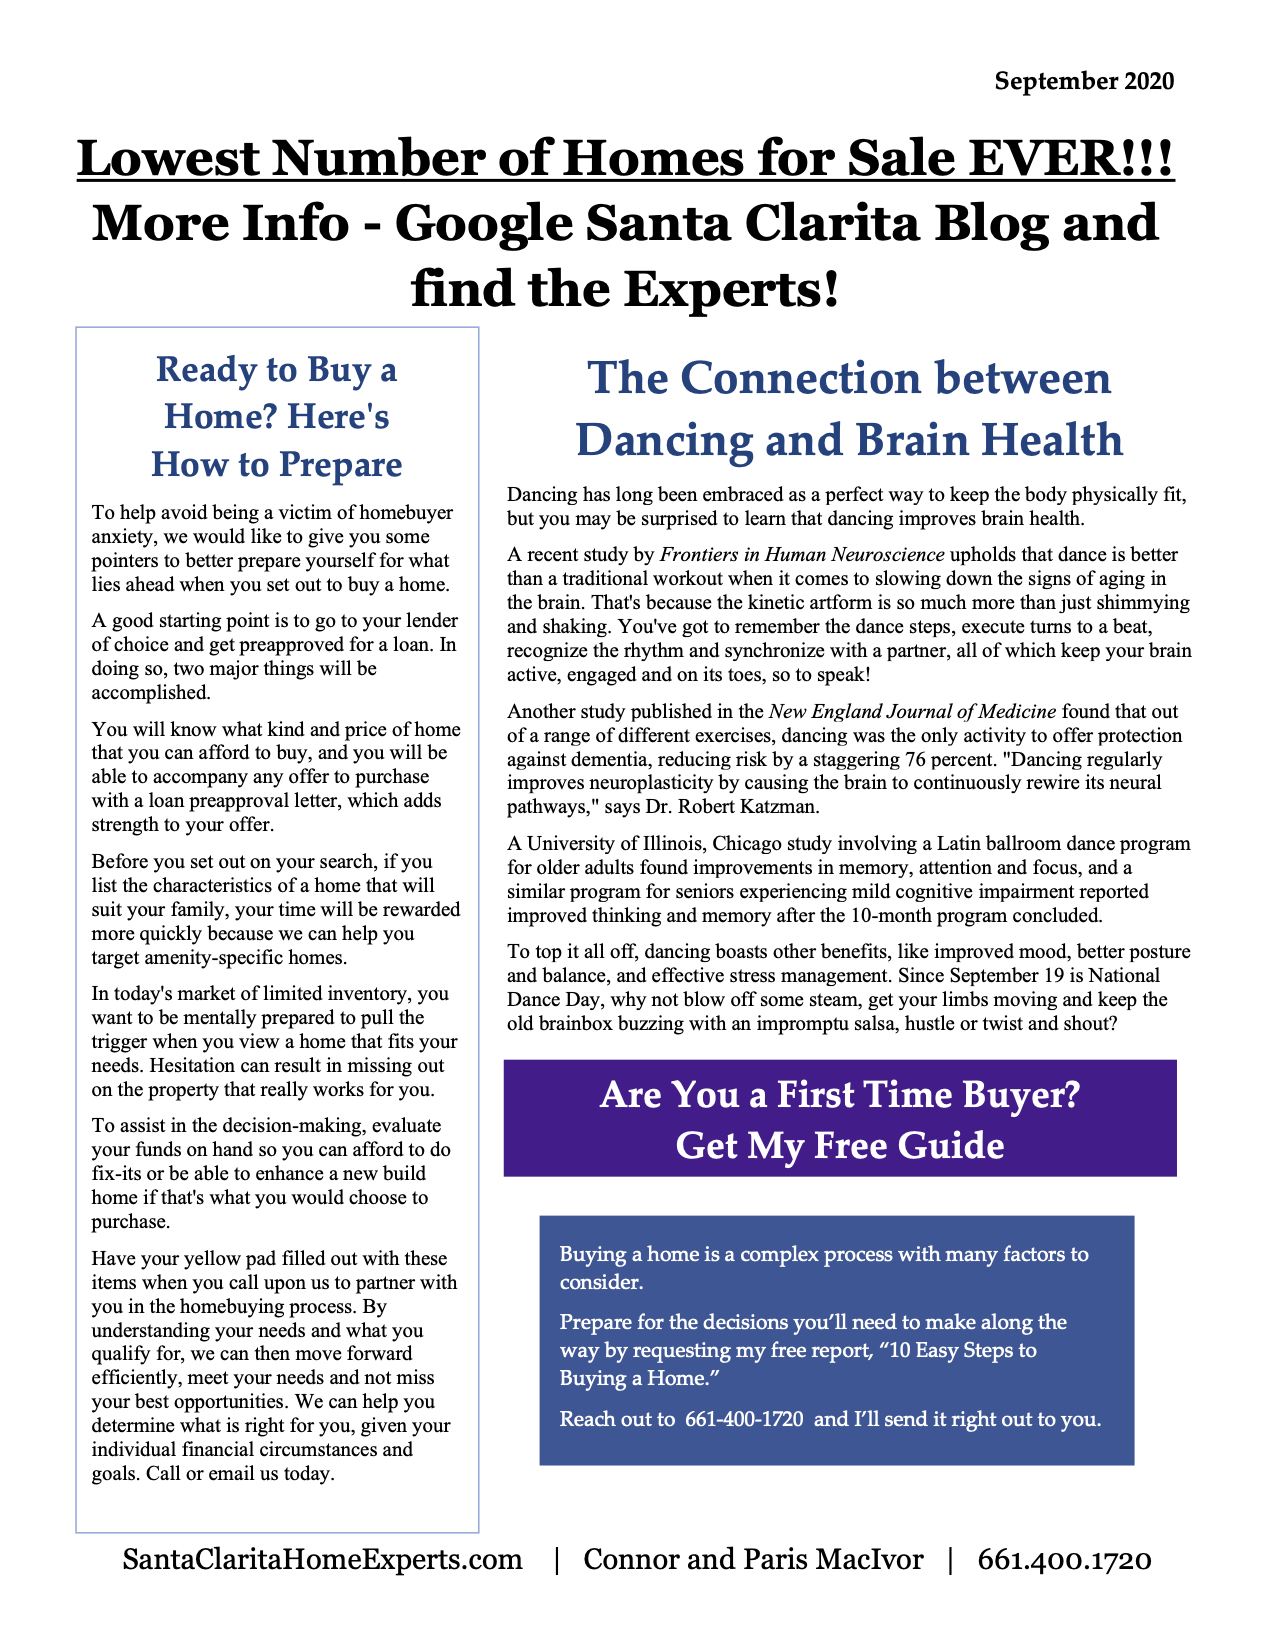 Santa Clarita real estate news page 1